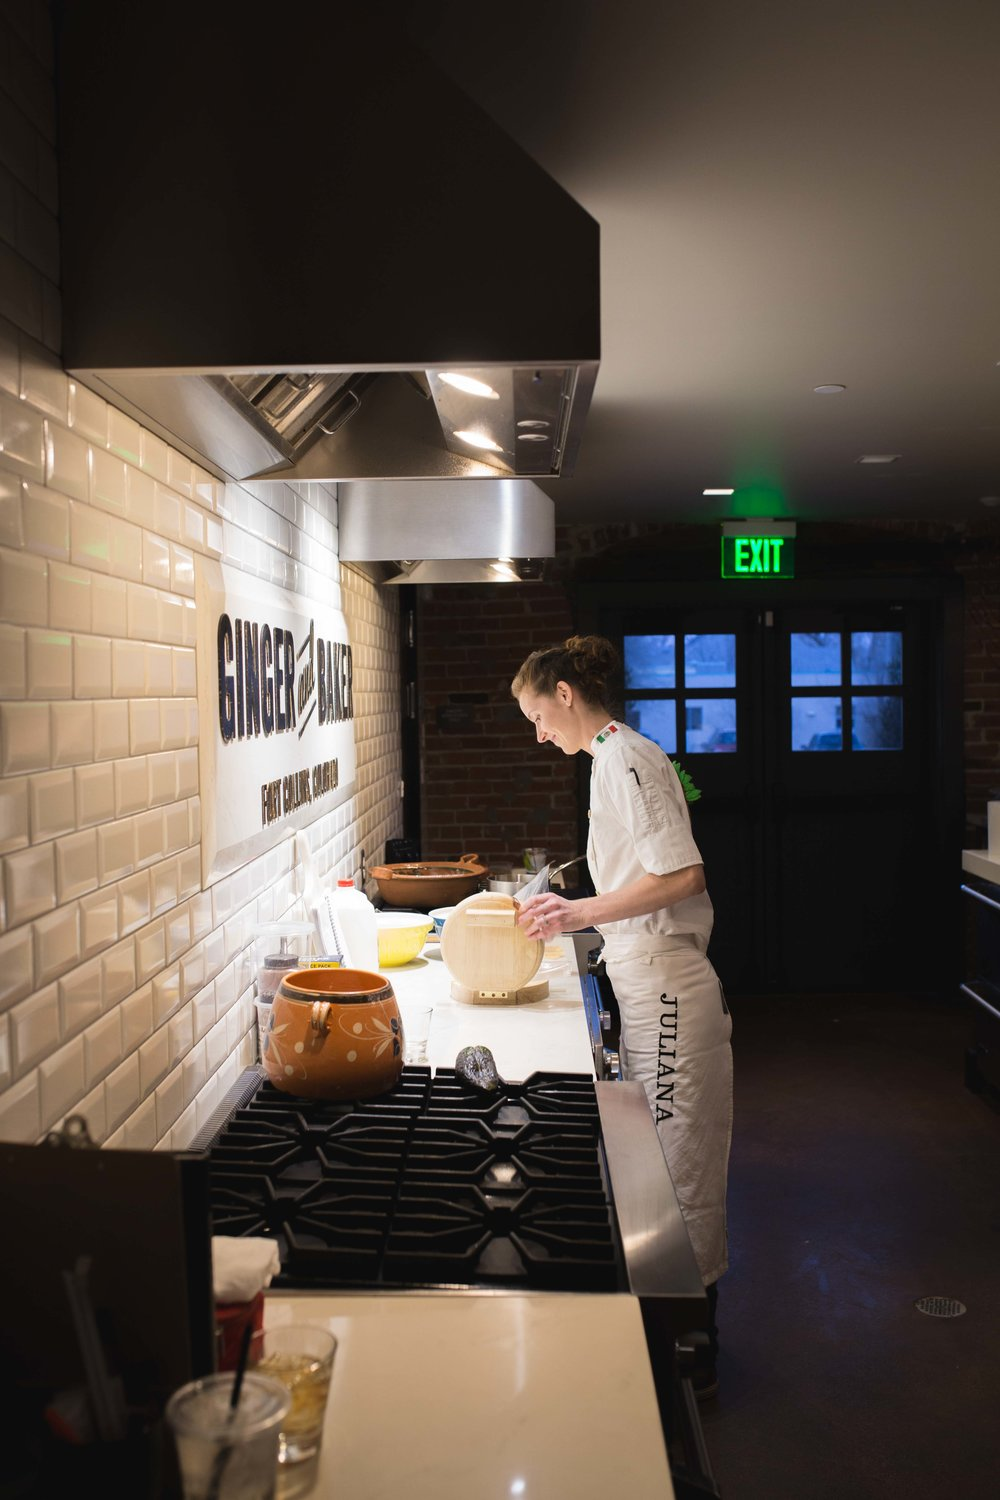 GingerandBaker-JuliyJuan-CookingClass-Feb28-9.jpg